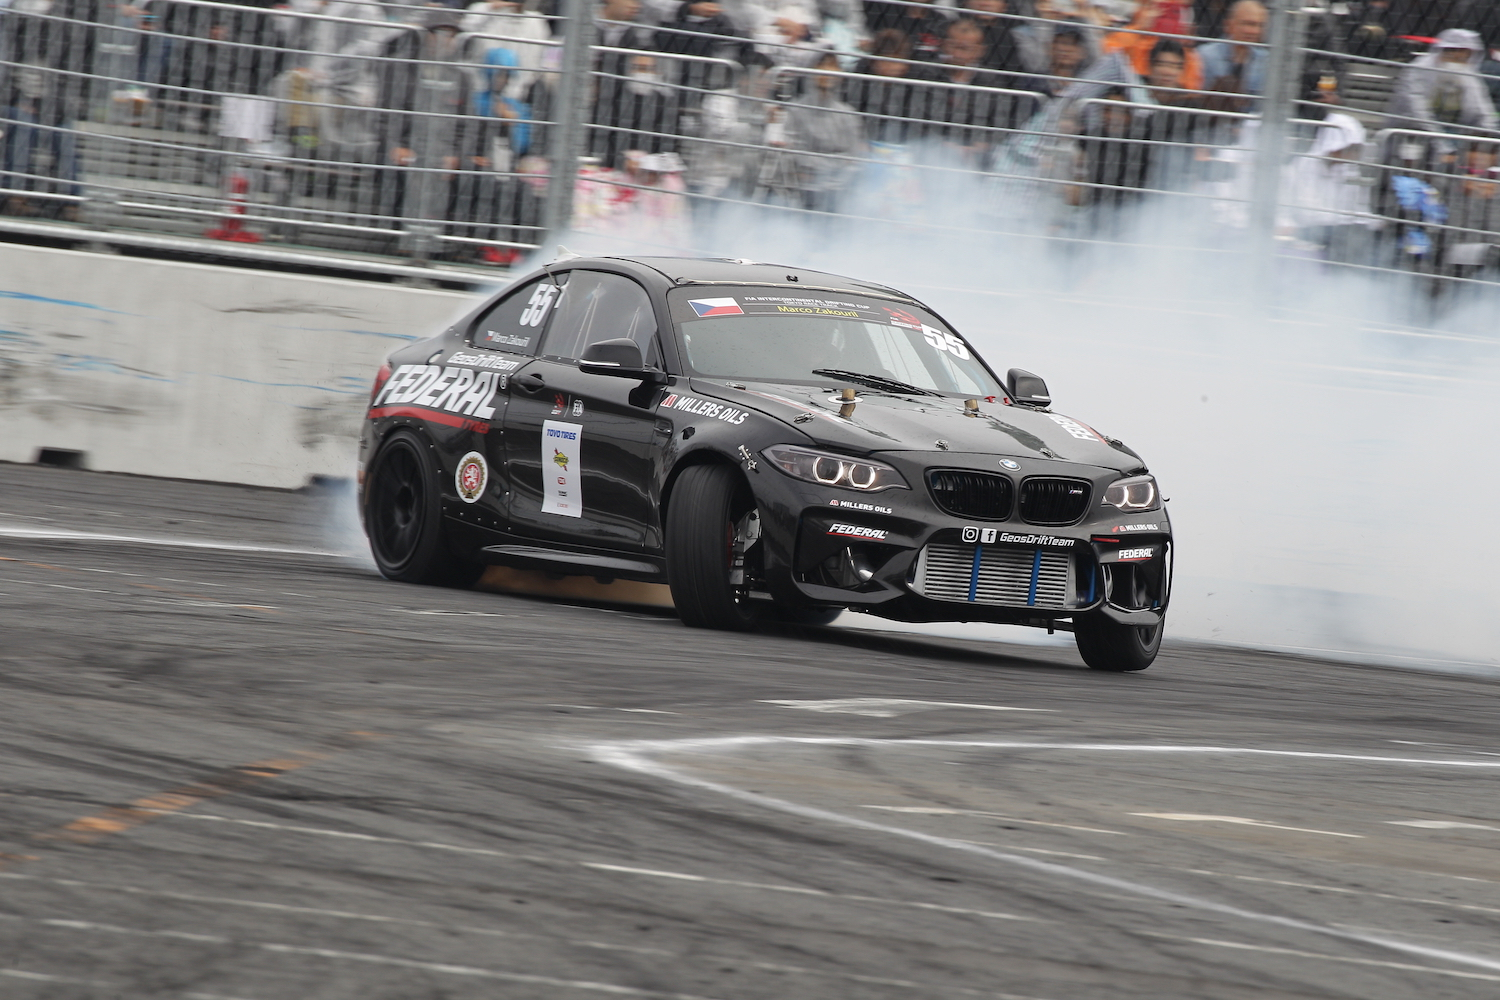 INTERCONTINENTAL DRIFTING CUP MOVES TO TSUKUBA FOR 2019